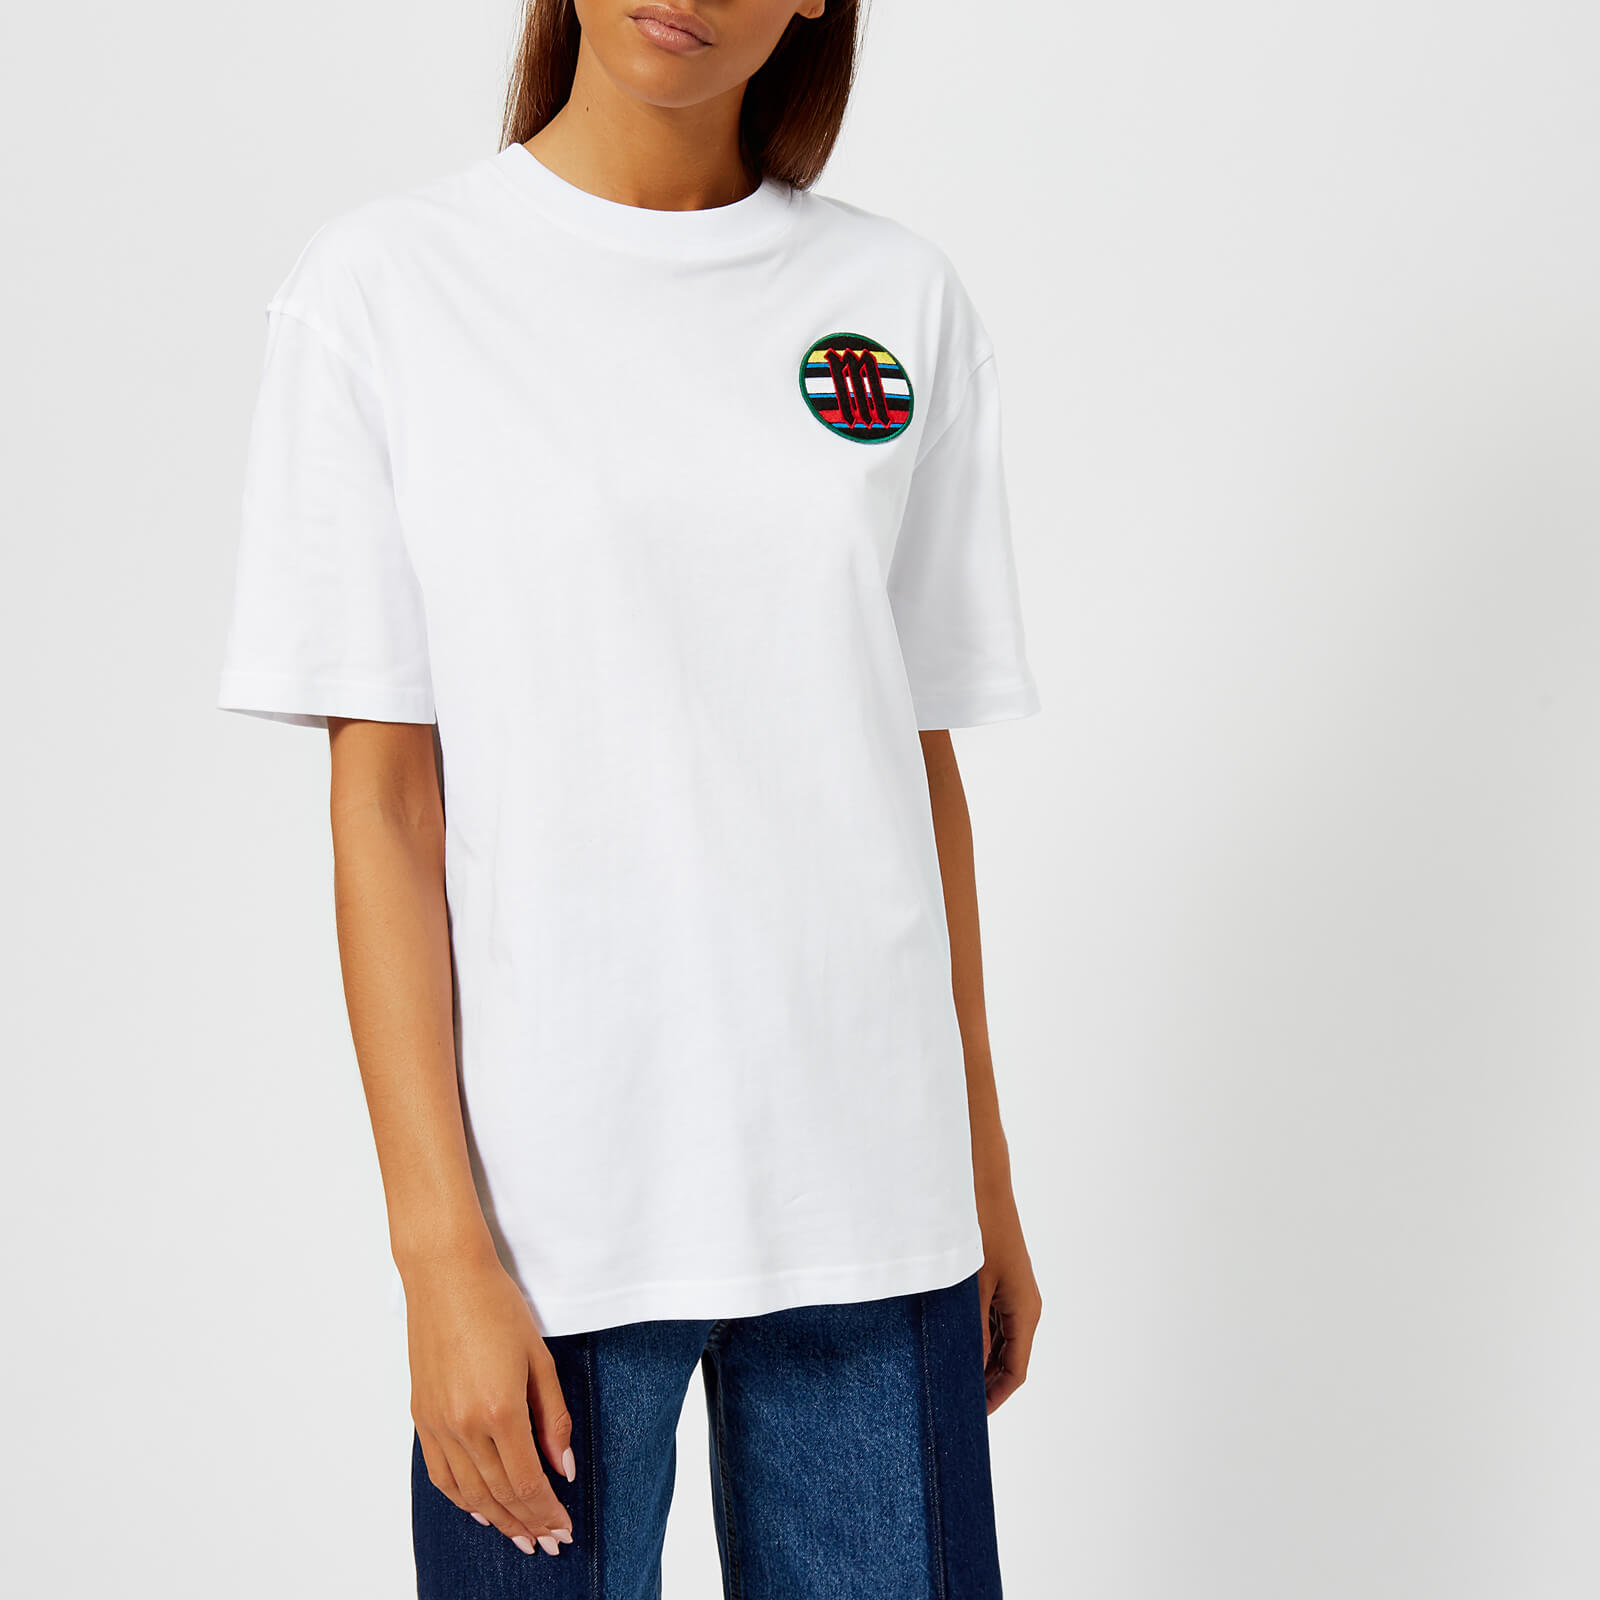 f69f247b McQ Alexander McQueen Women's Boyfriend Scout Badge T-Shirt - Free UK  Delivery over £50